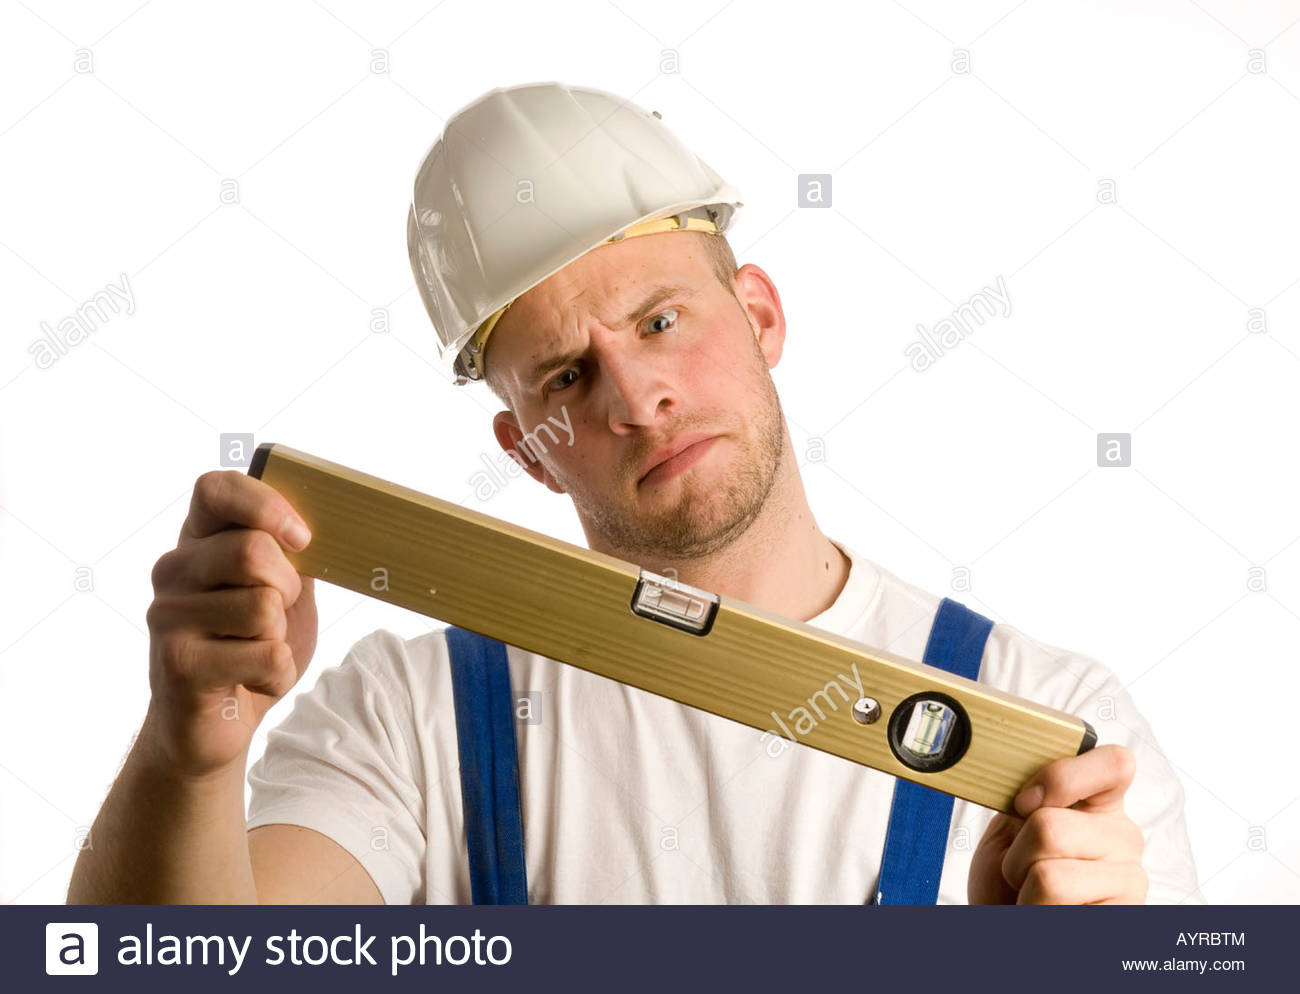 construction-worker-holding-spirit-level-bubble-level-AYRBTM.jpg